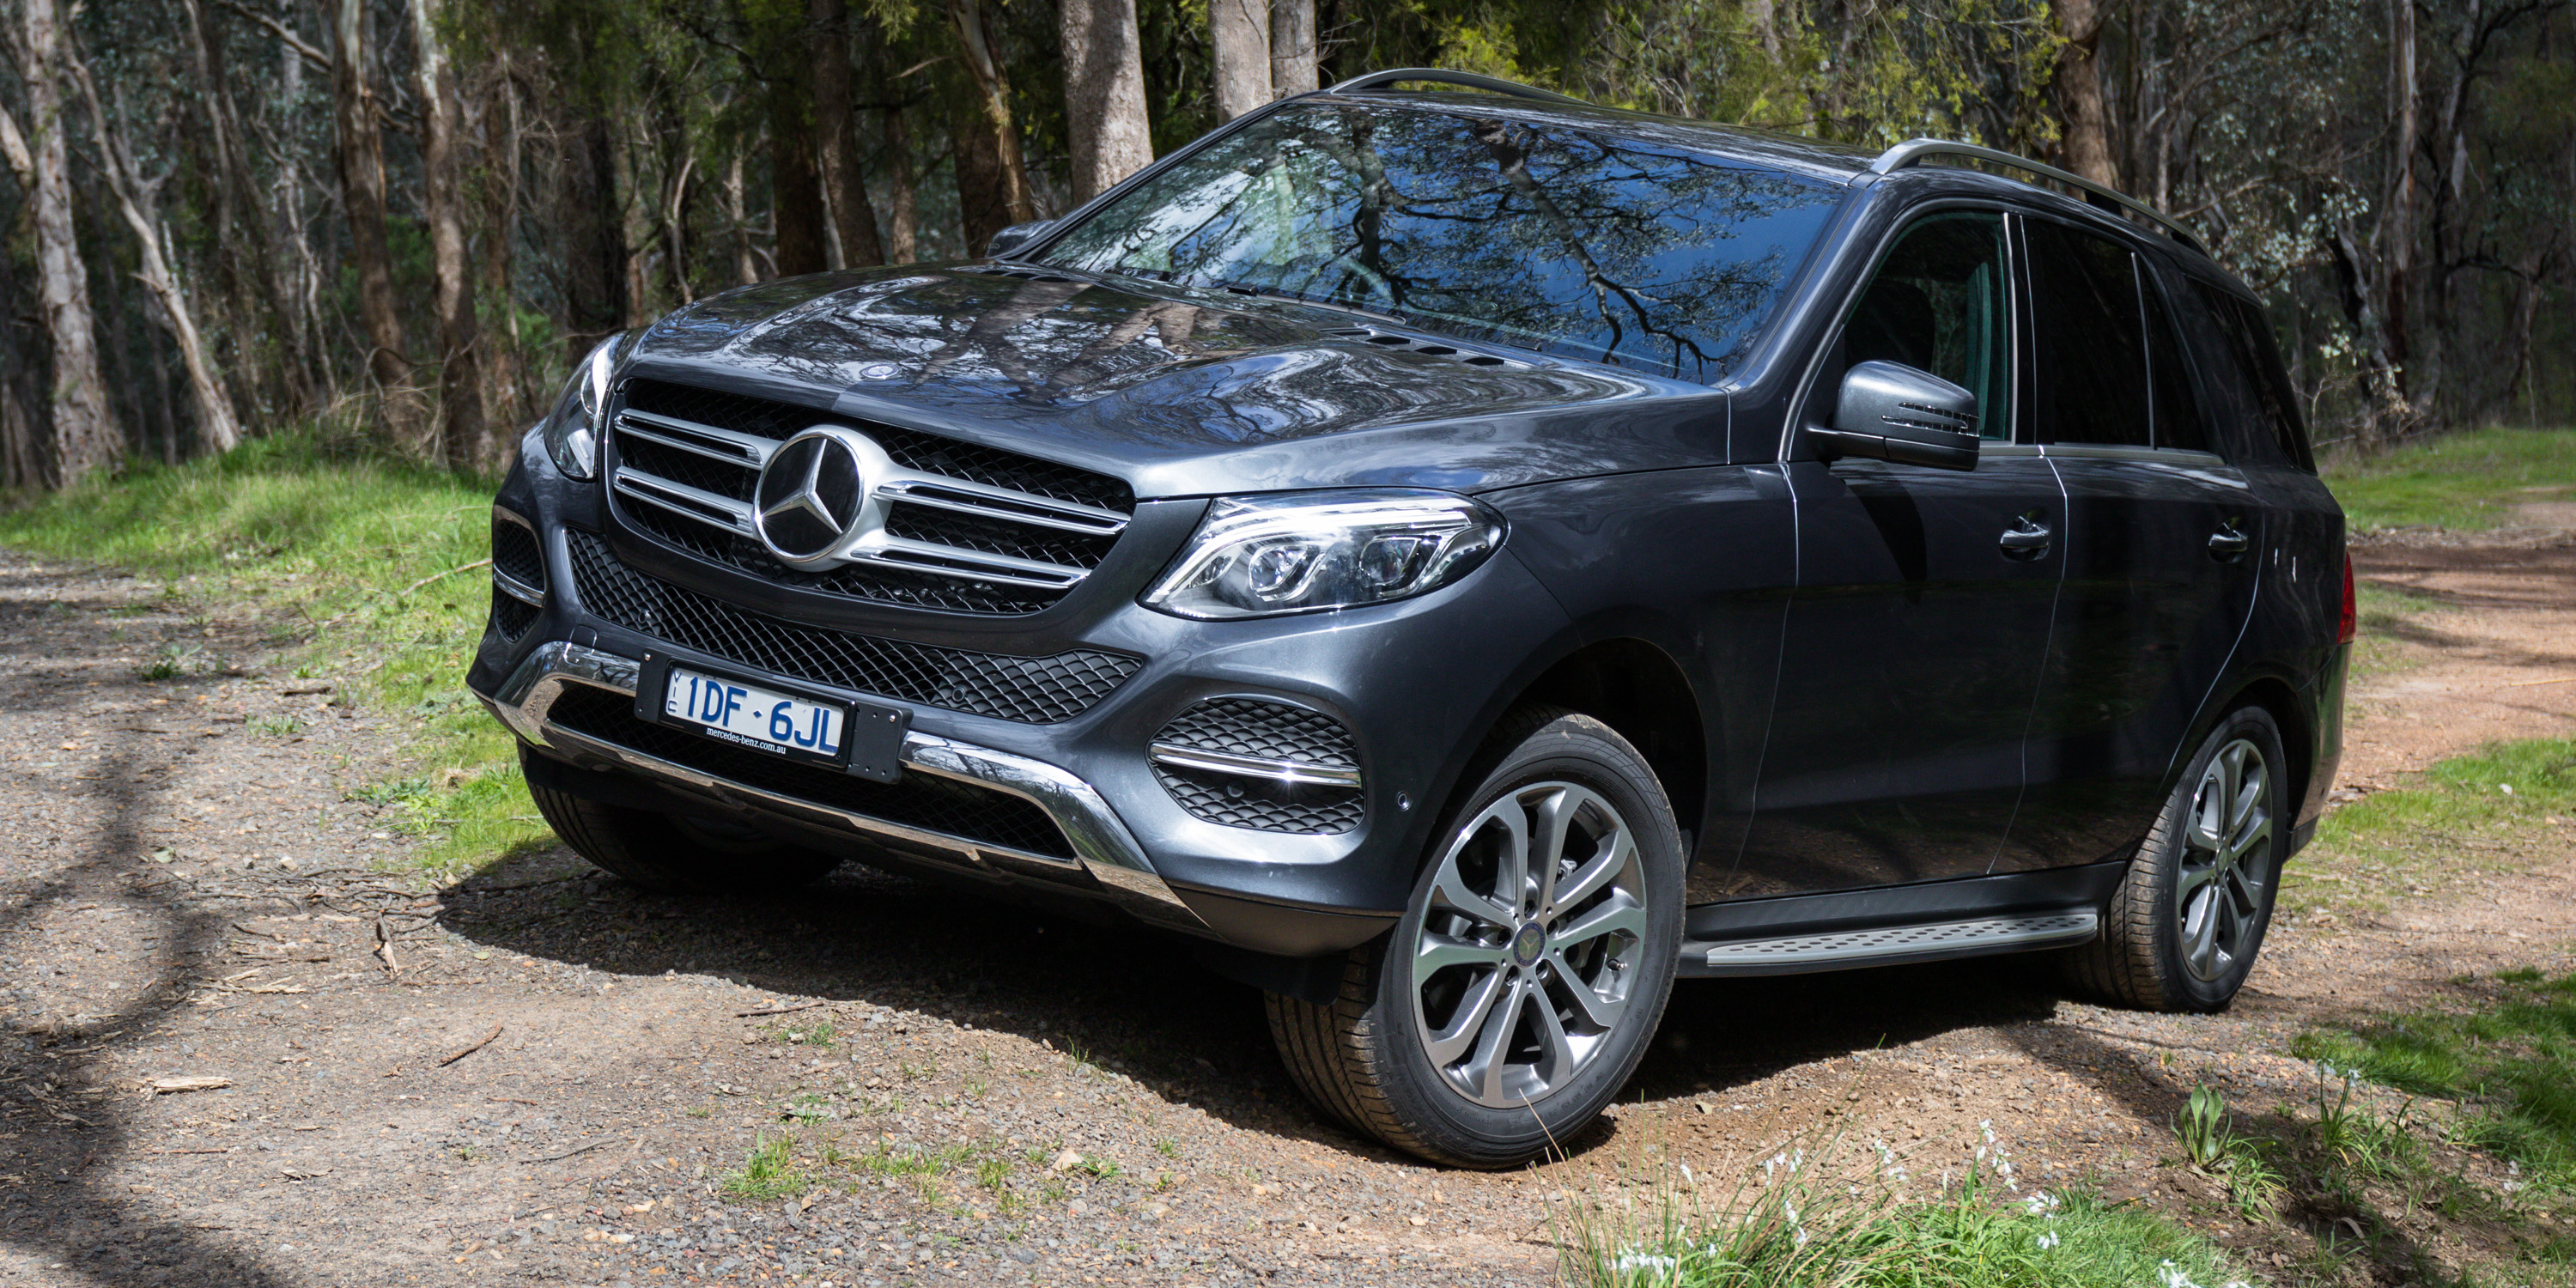 2016 mercedes benz gle 250d review caradvice for Mercedes benz suv reviews